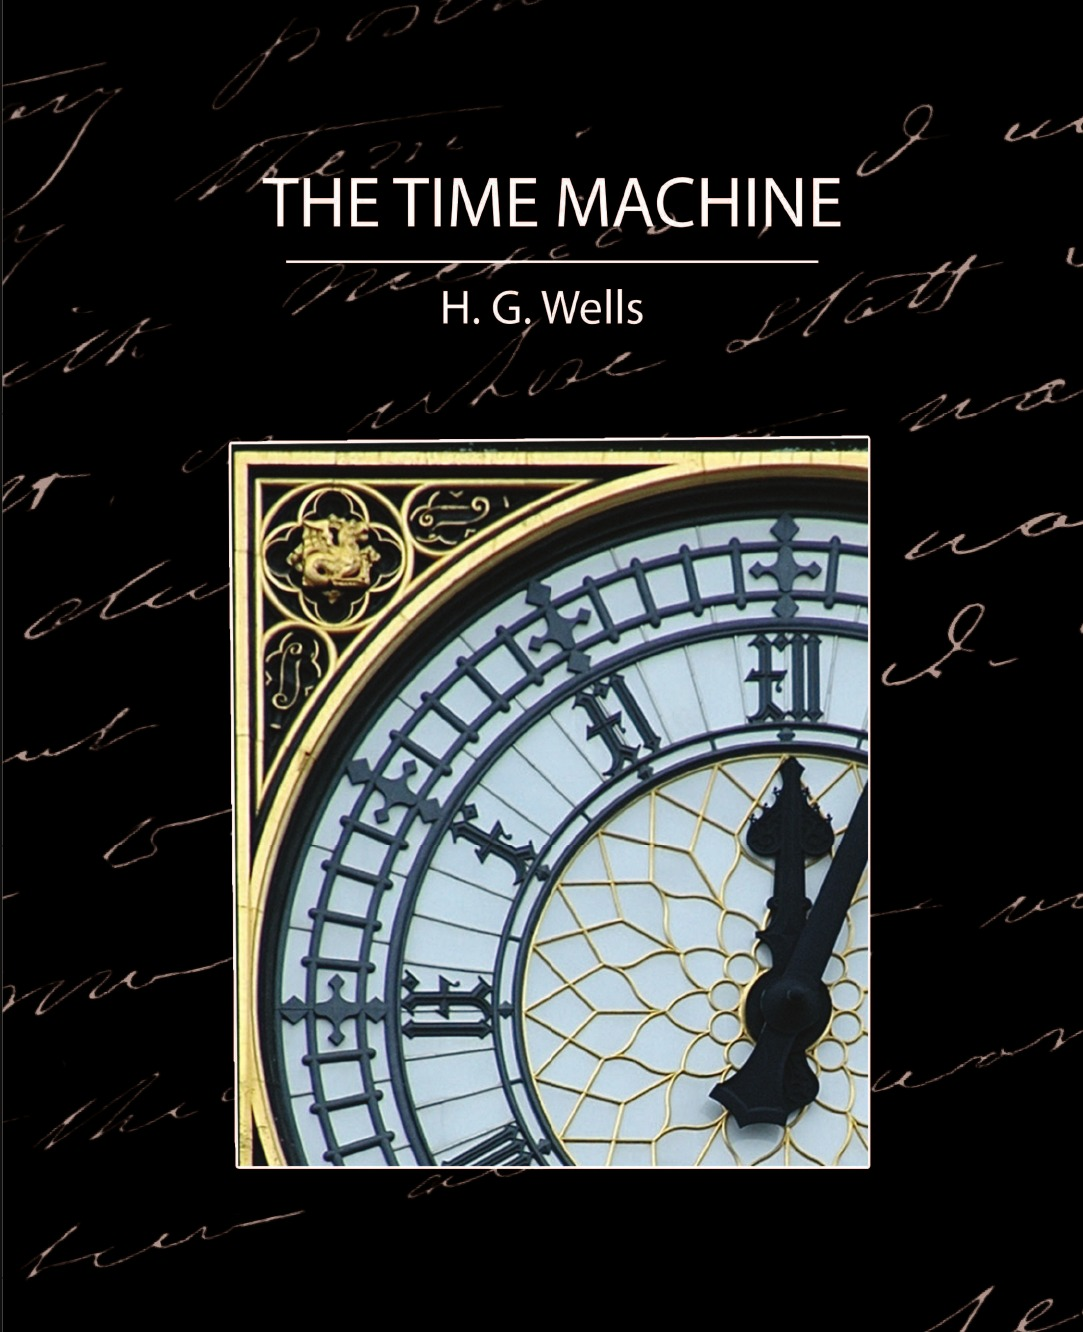 лучшая цена H. G. Wells, G. Wells H. G. Wells, H. G. Wells The Time Machine